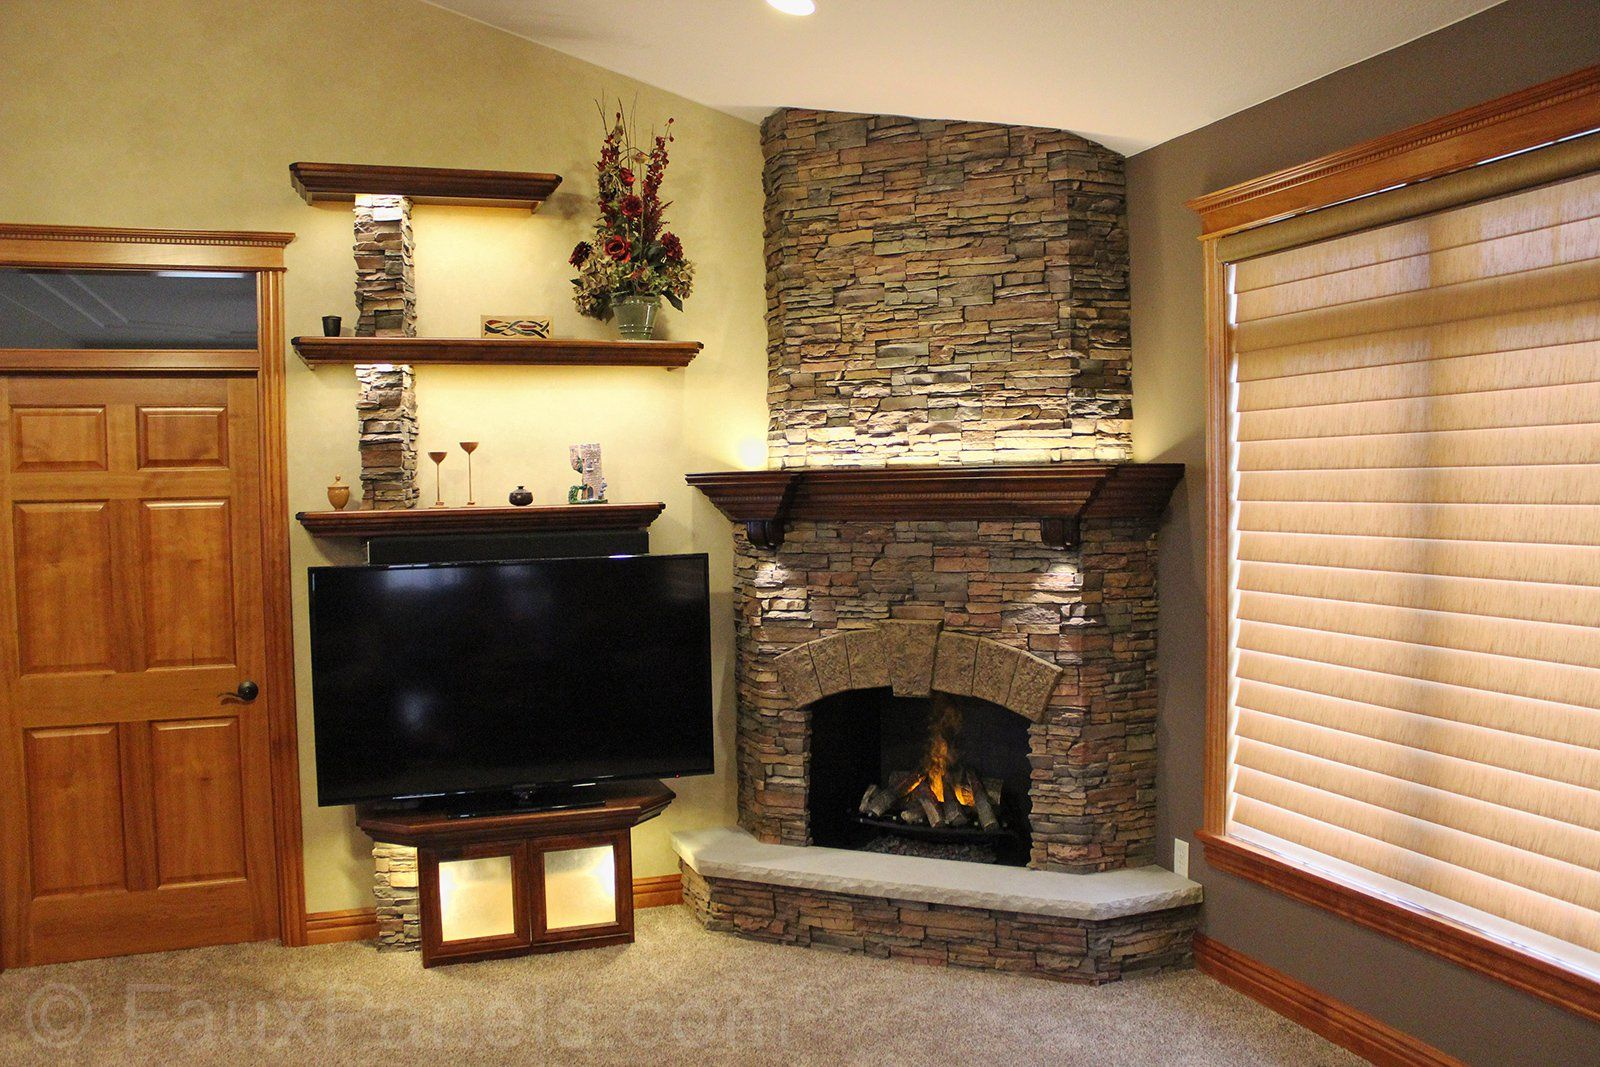 Faux Paneling Ideas Photos To Inspire Diy Design Projects Build A Fireplace Home Renovation Updating House